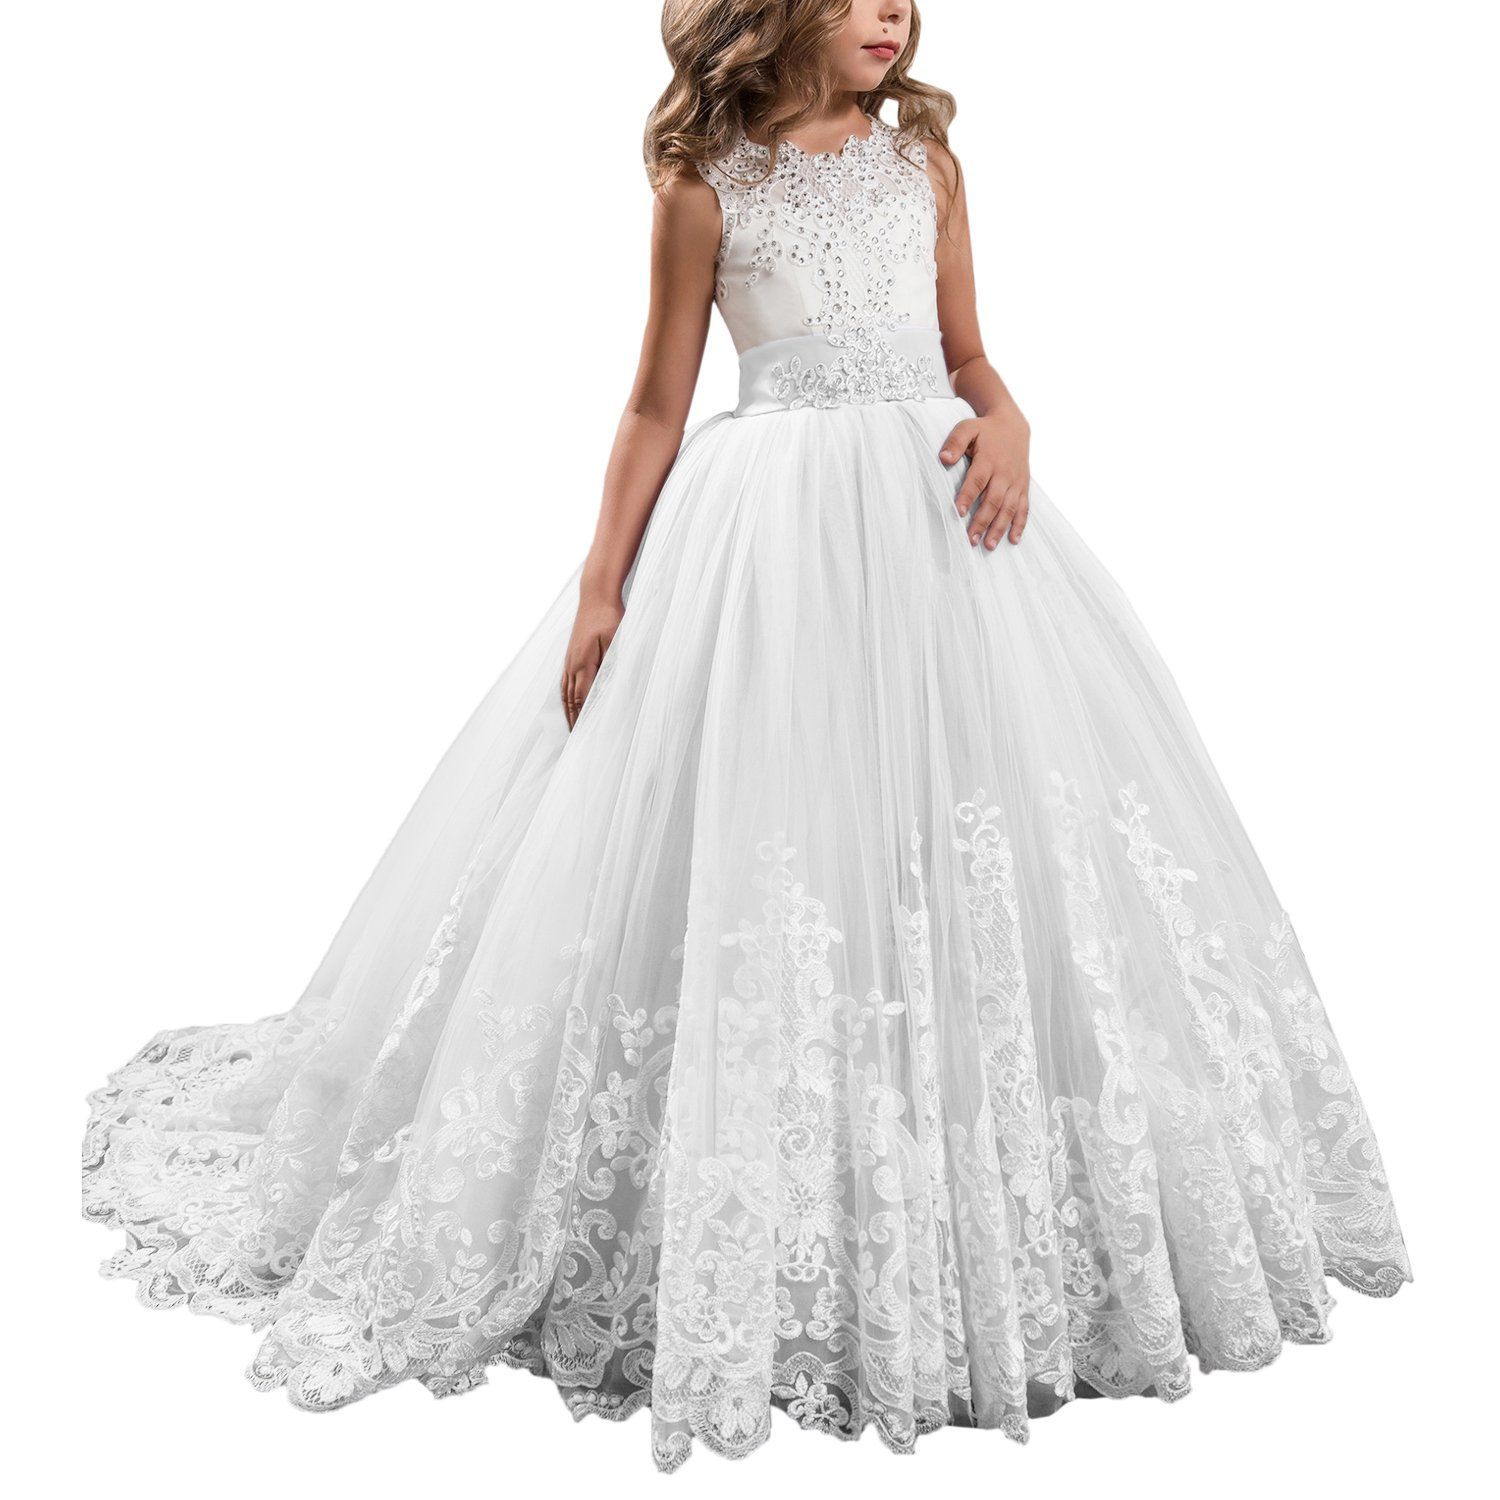 Princess White Long Girls Pageant Dresses Kids Prom Puffy Tulle Ball Gown  US 6. Suitable a85925144c8f